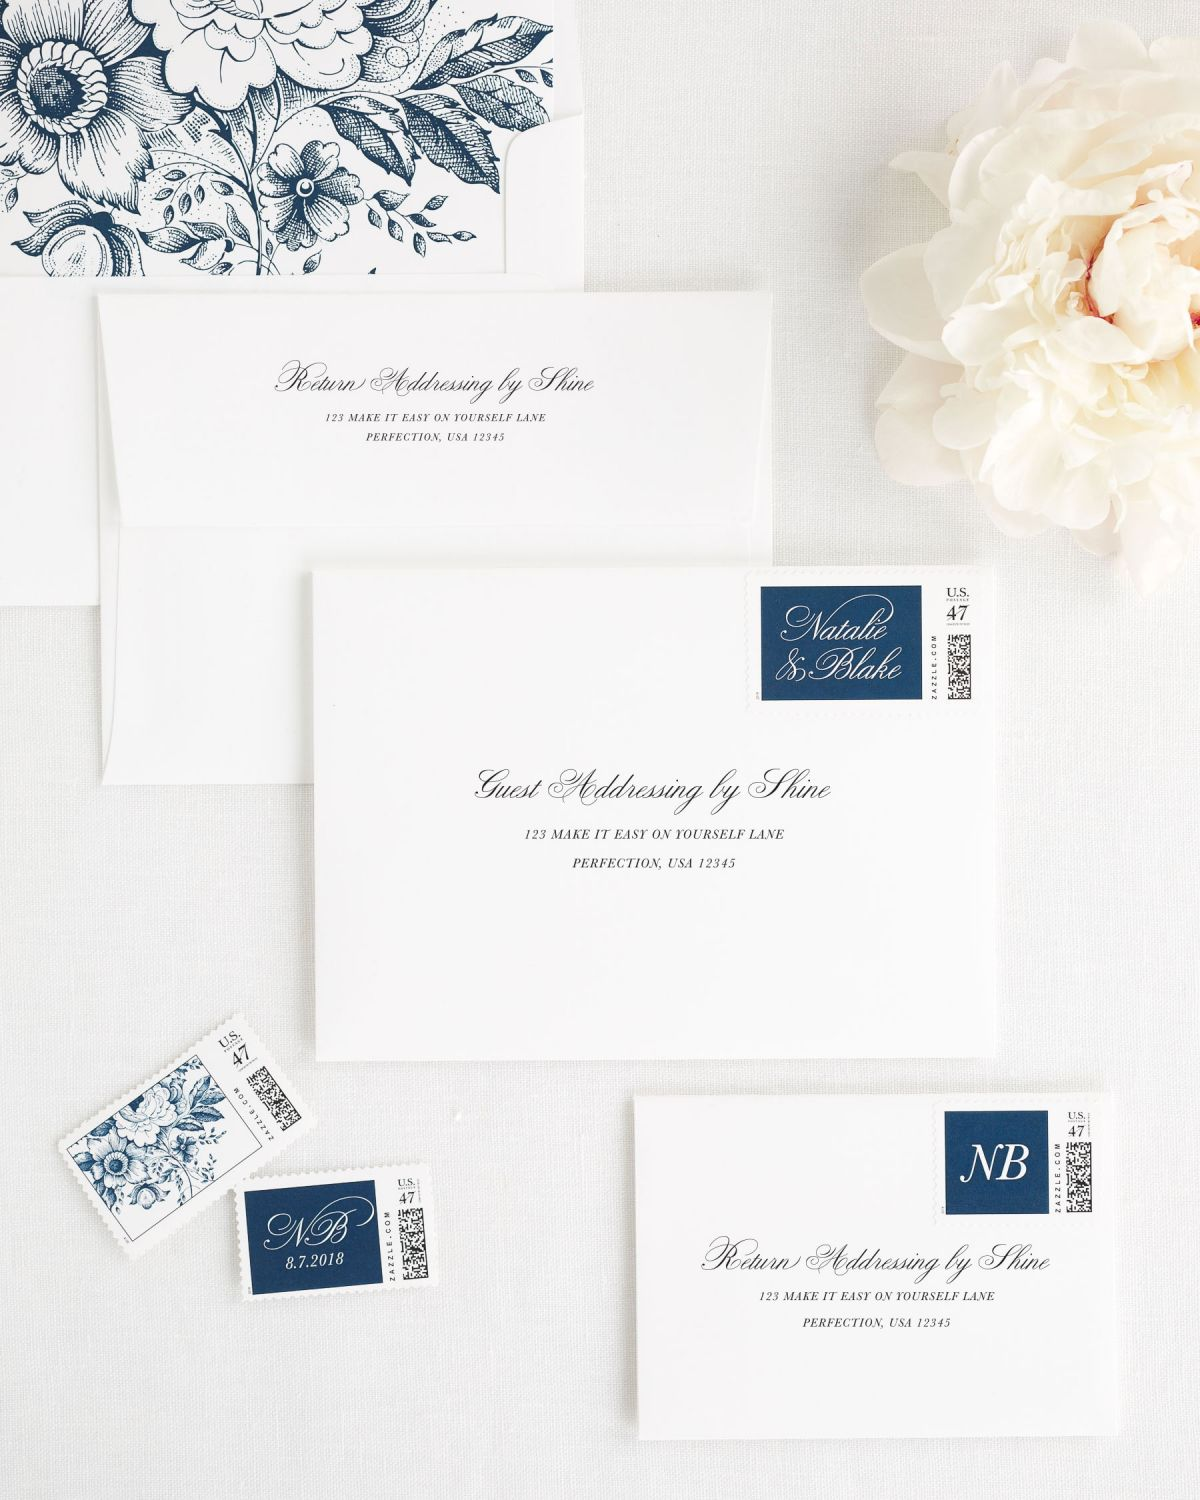 wedding envelopes with guest addressing and custom stamps in navy